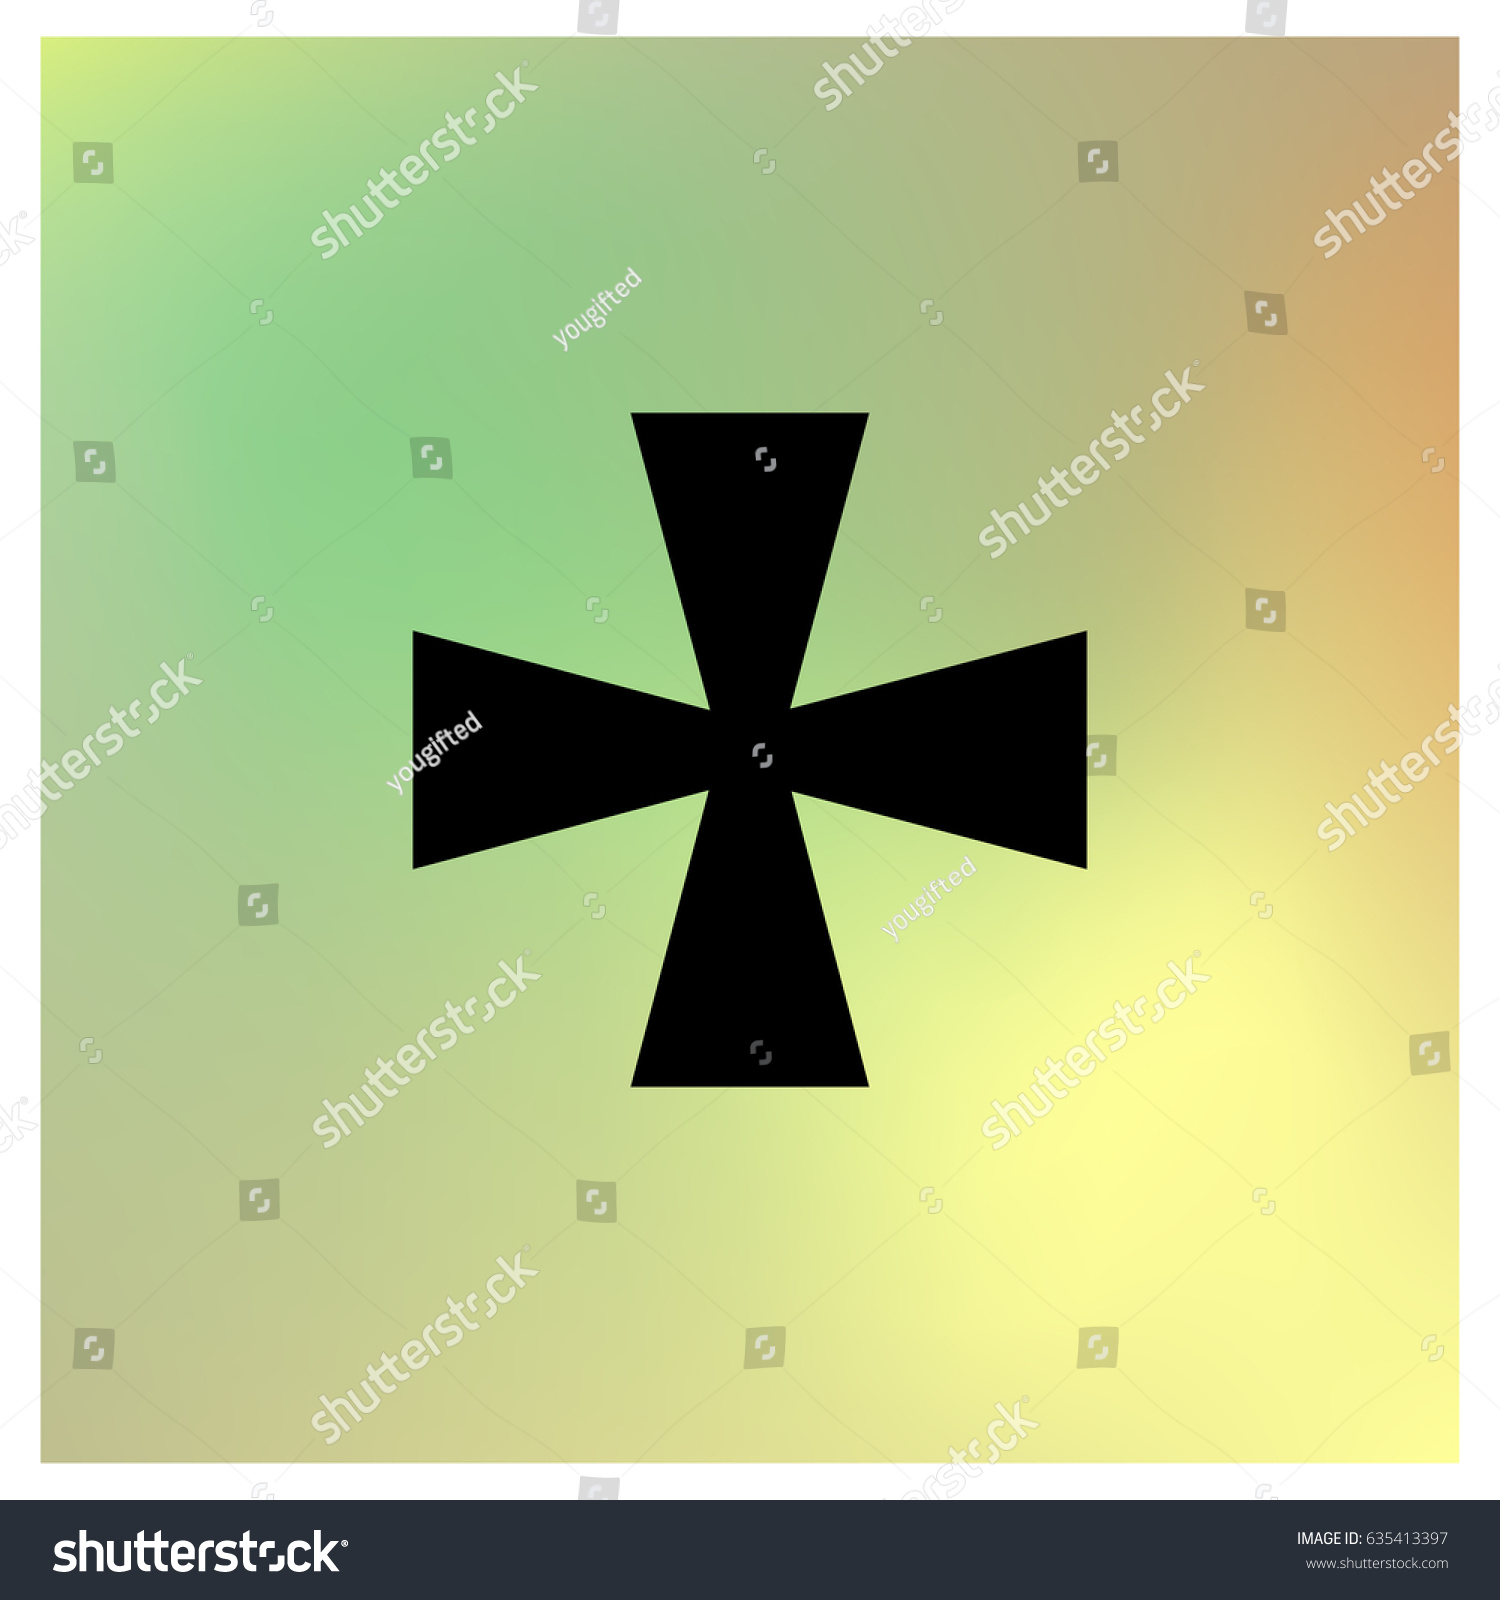 Church icons topographic map stock vector 635413397 shutterstock church icons for a topographic map buycottarizona Image collections